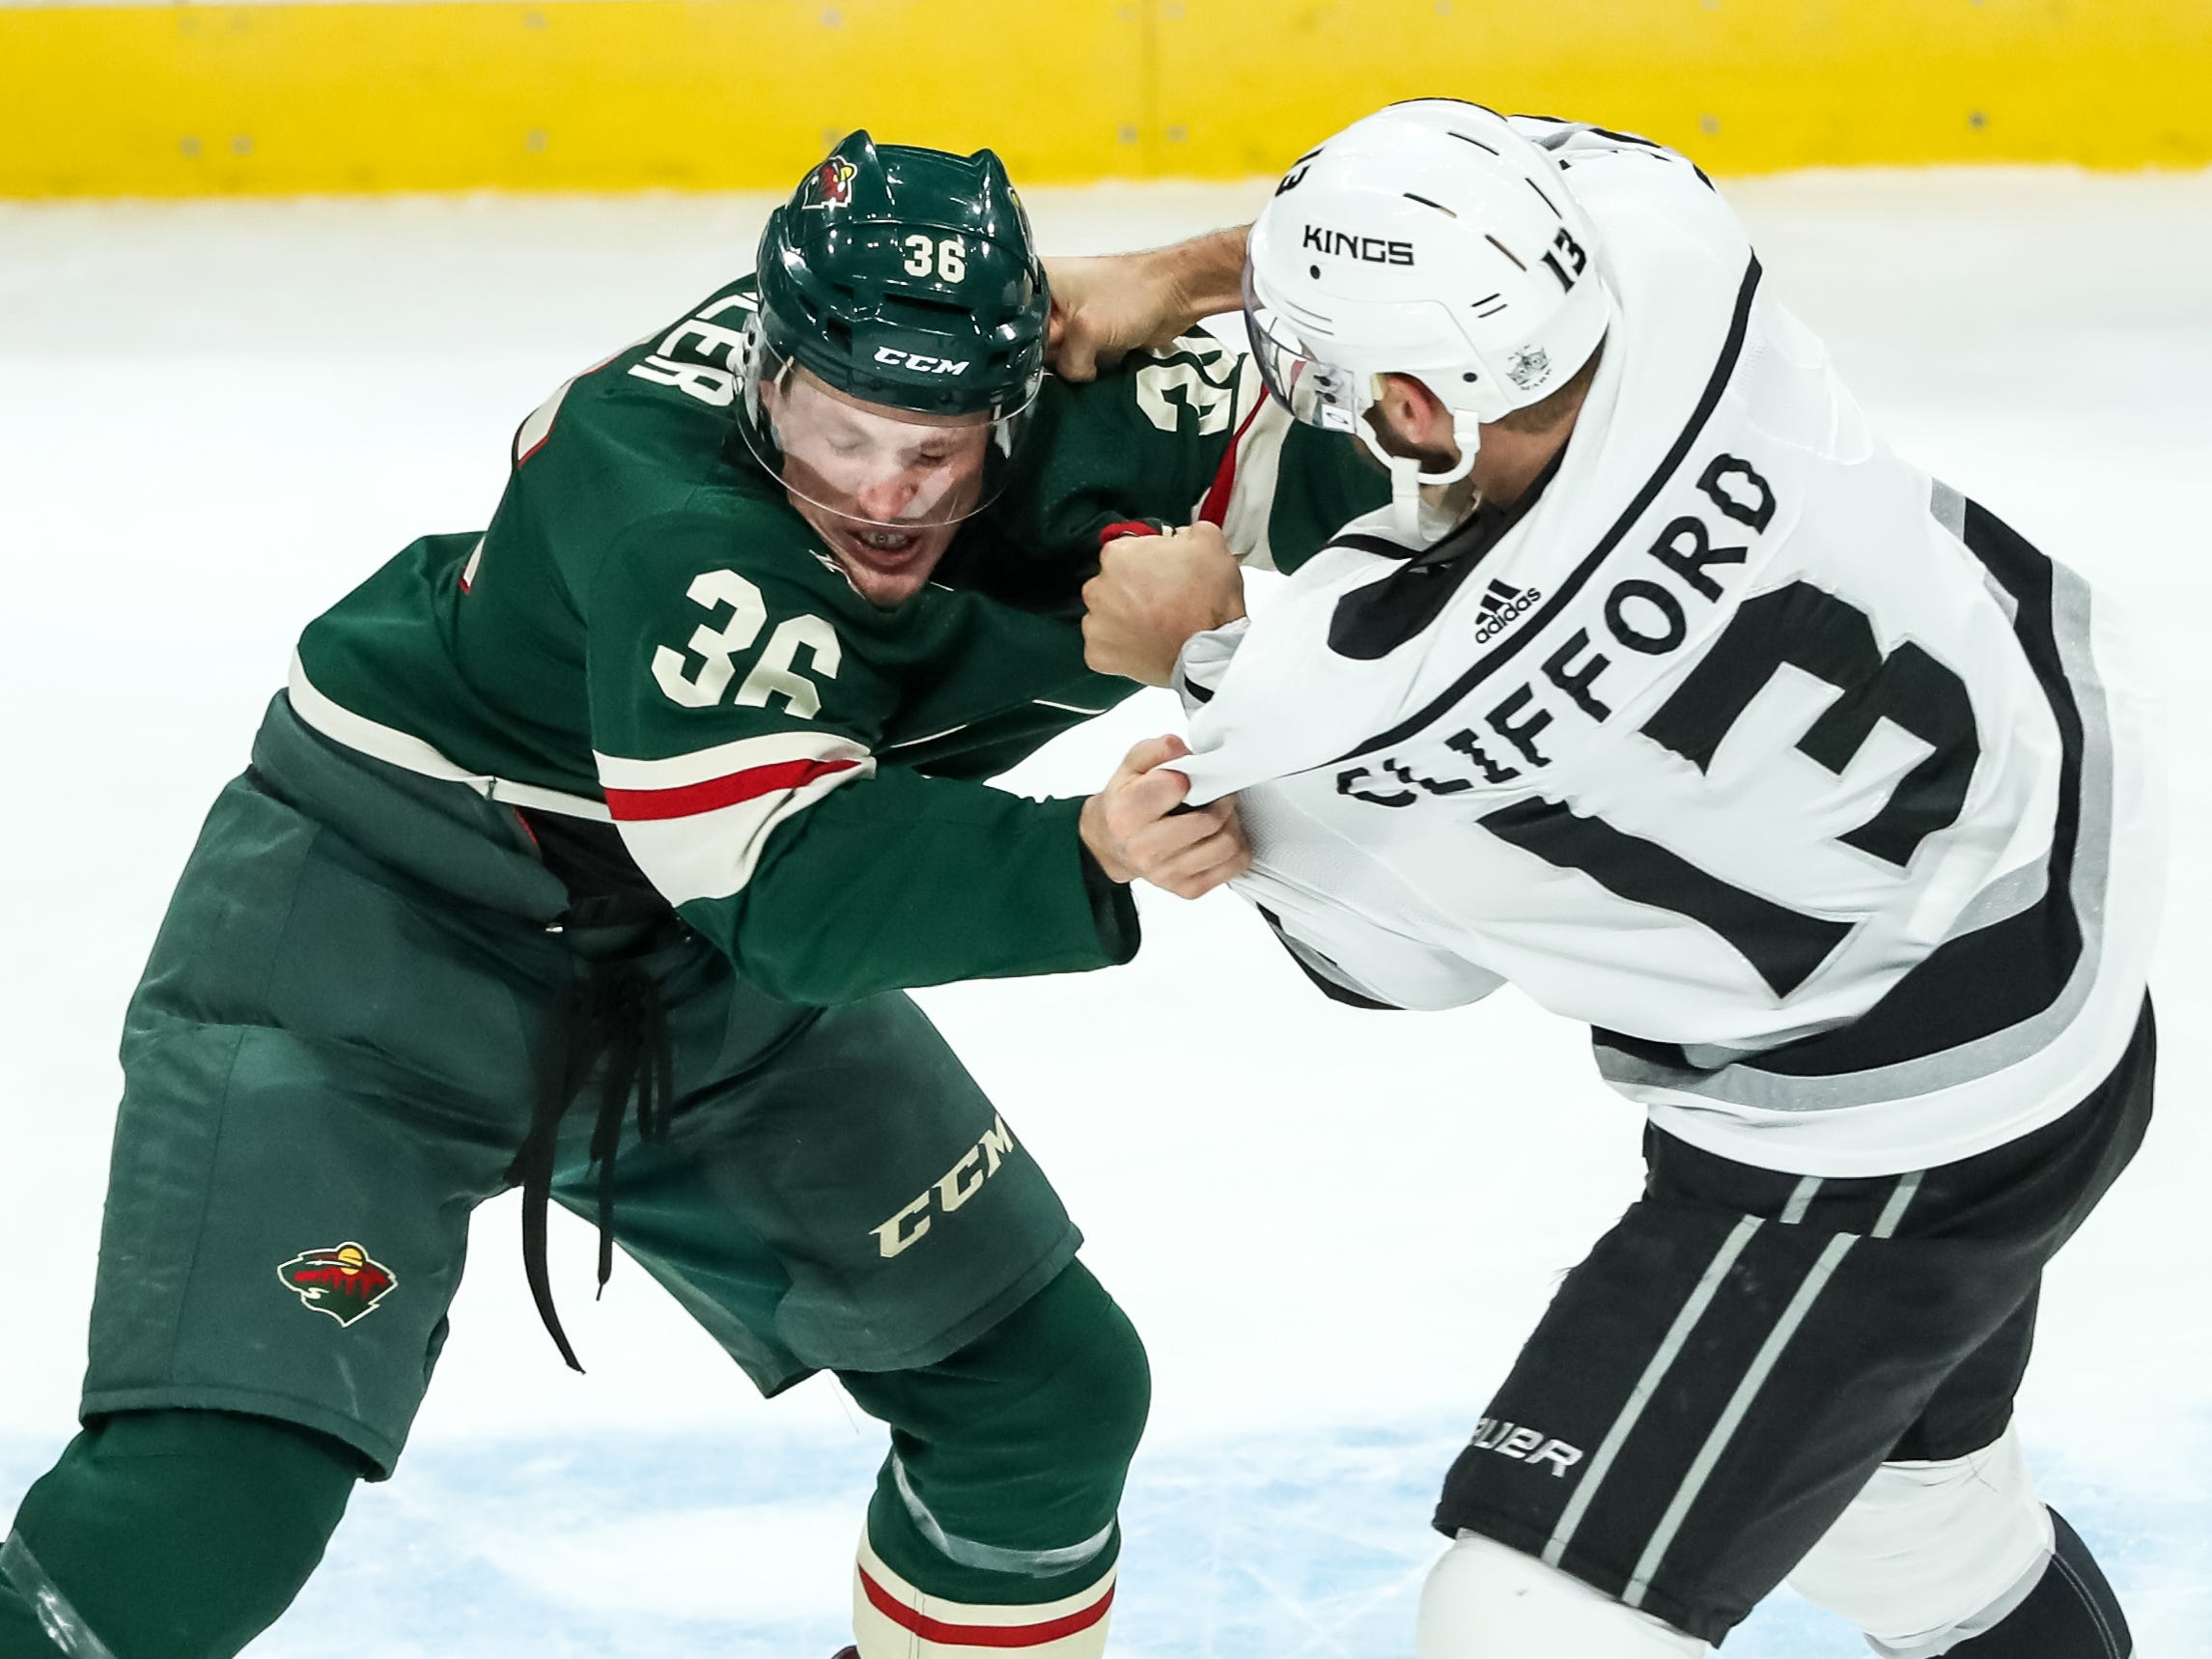 Oct. 25: Minnesota Wild' Nick Steeler vs. Los Angeles Kings' Kyle Clifford.